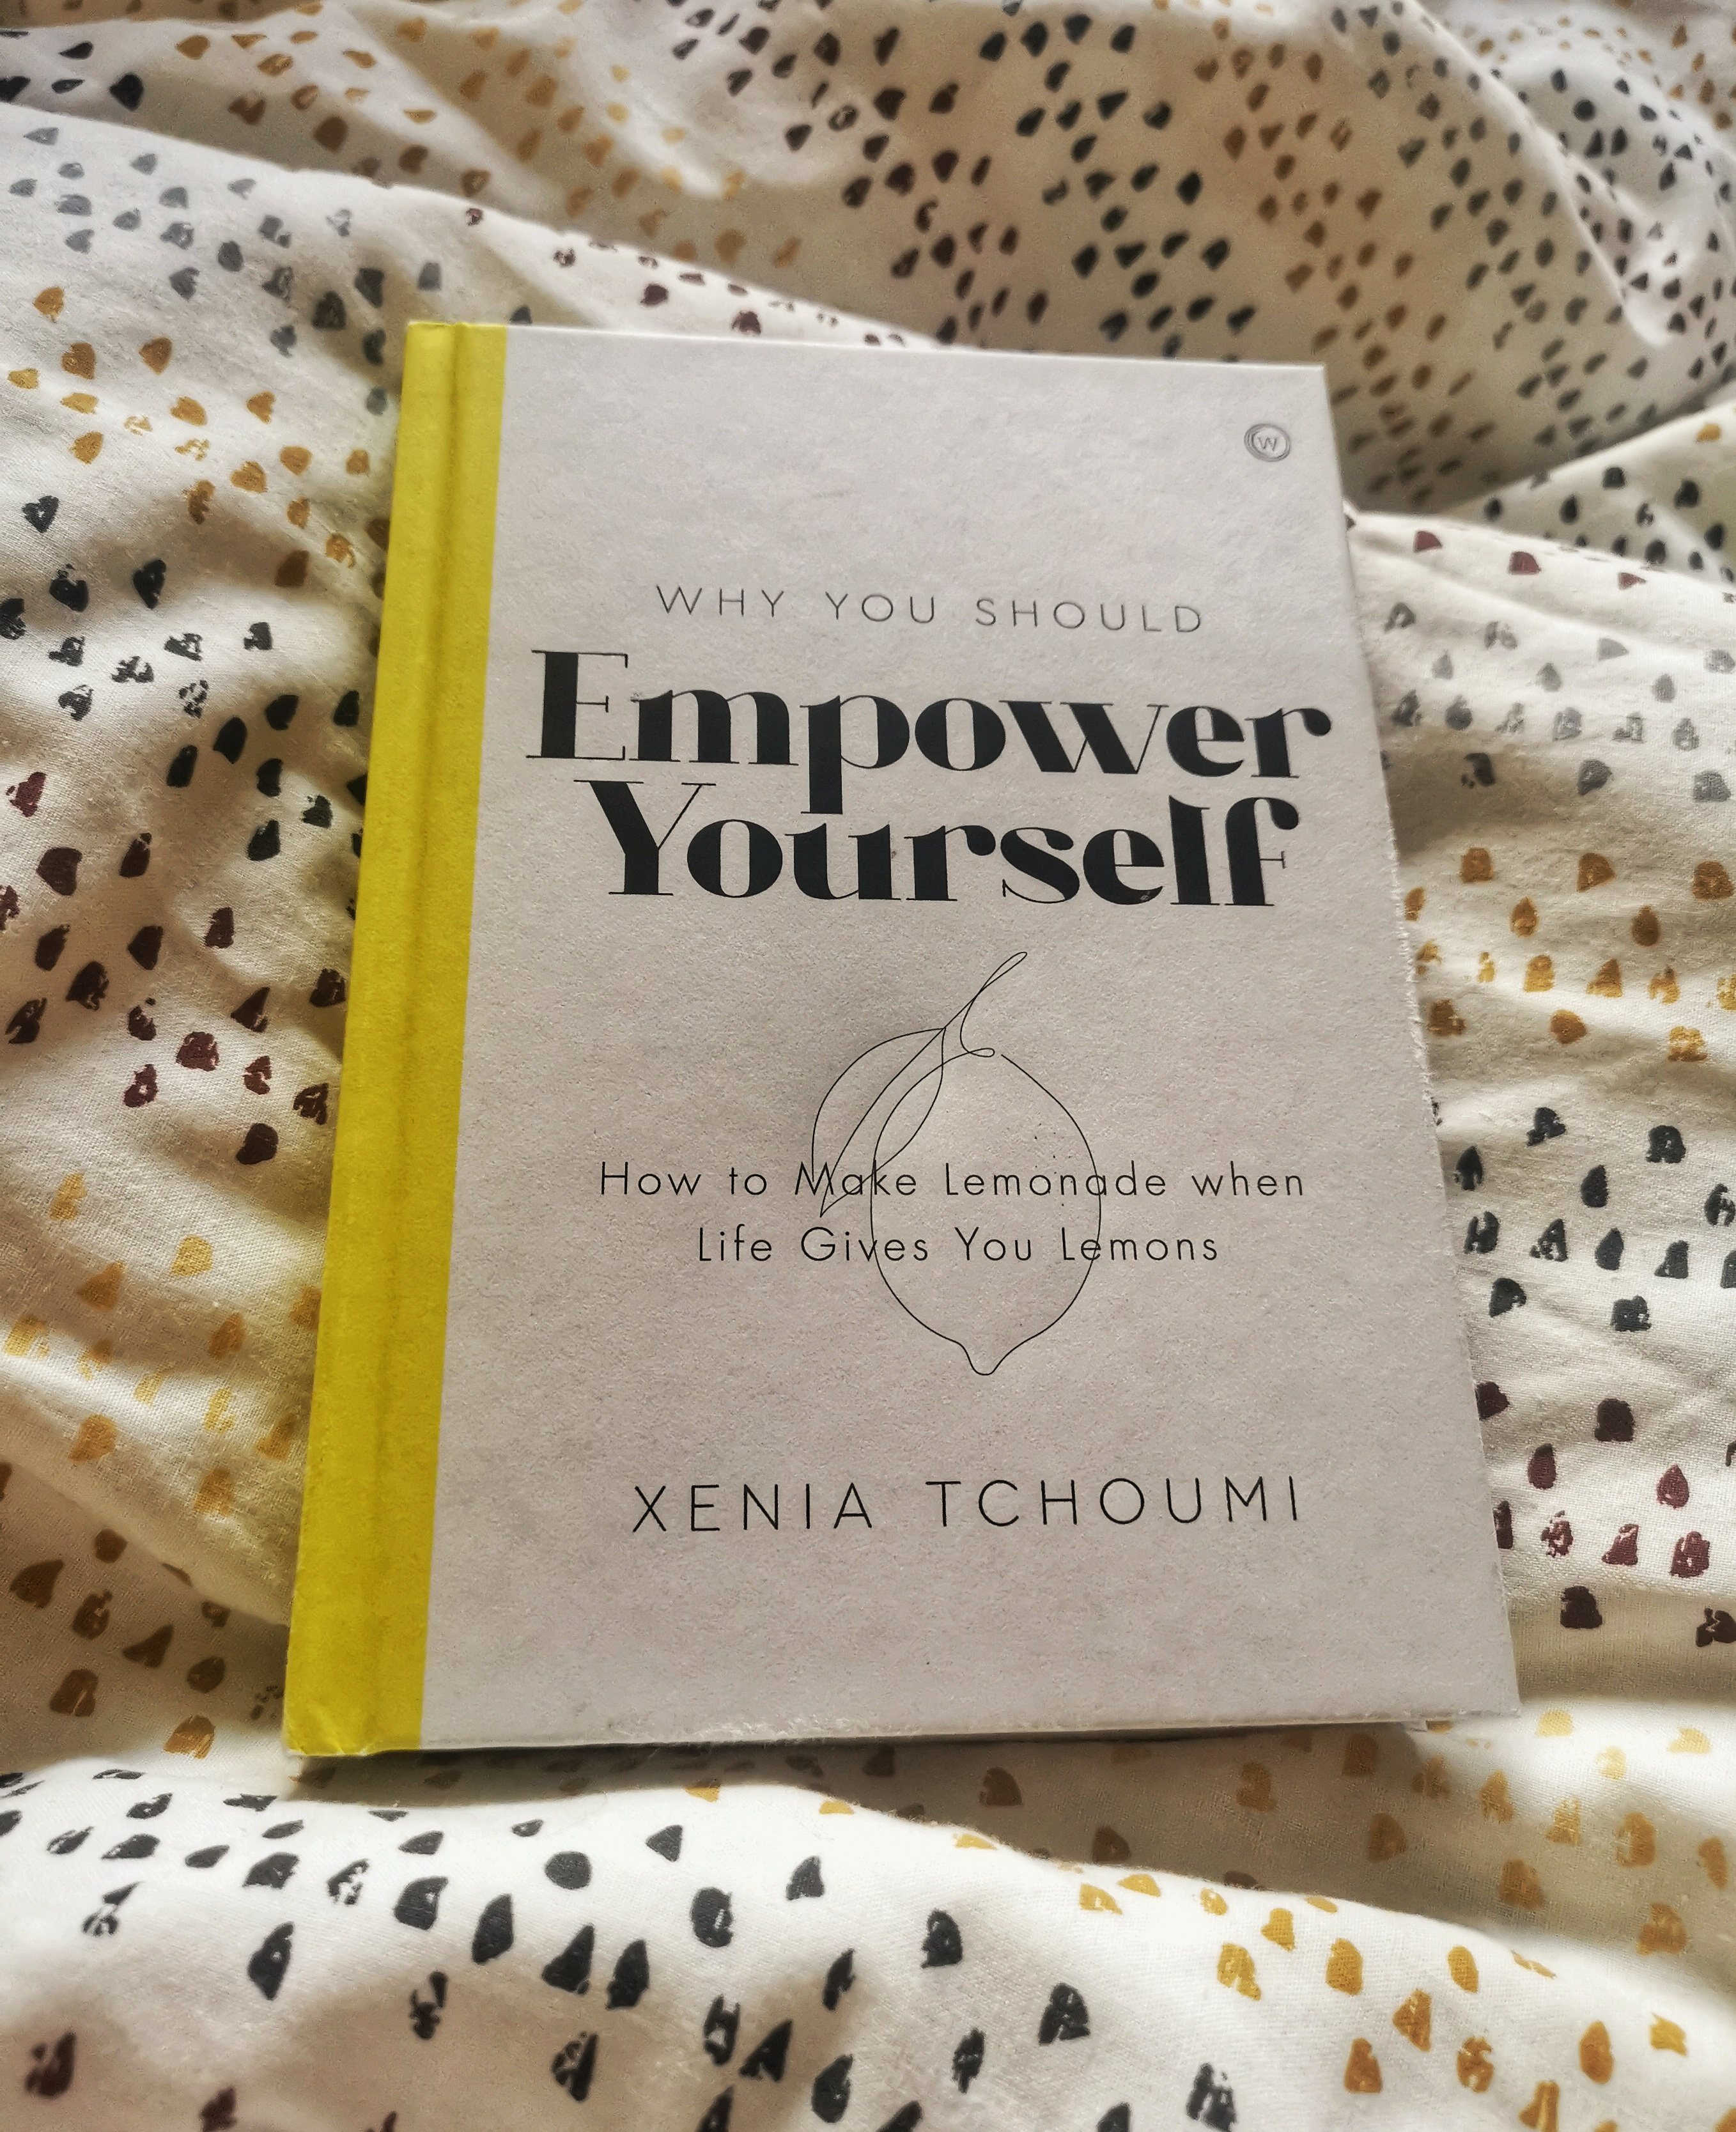 Starting the day the right way with Empower yourself by Xenia Tchoumi. Full review available at @tbookjunkie